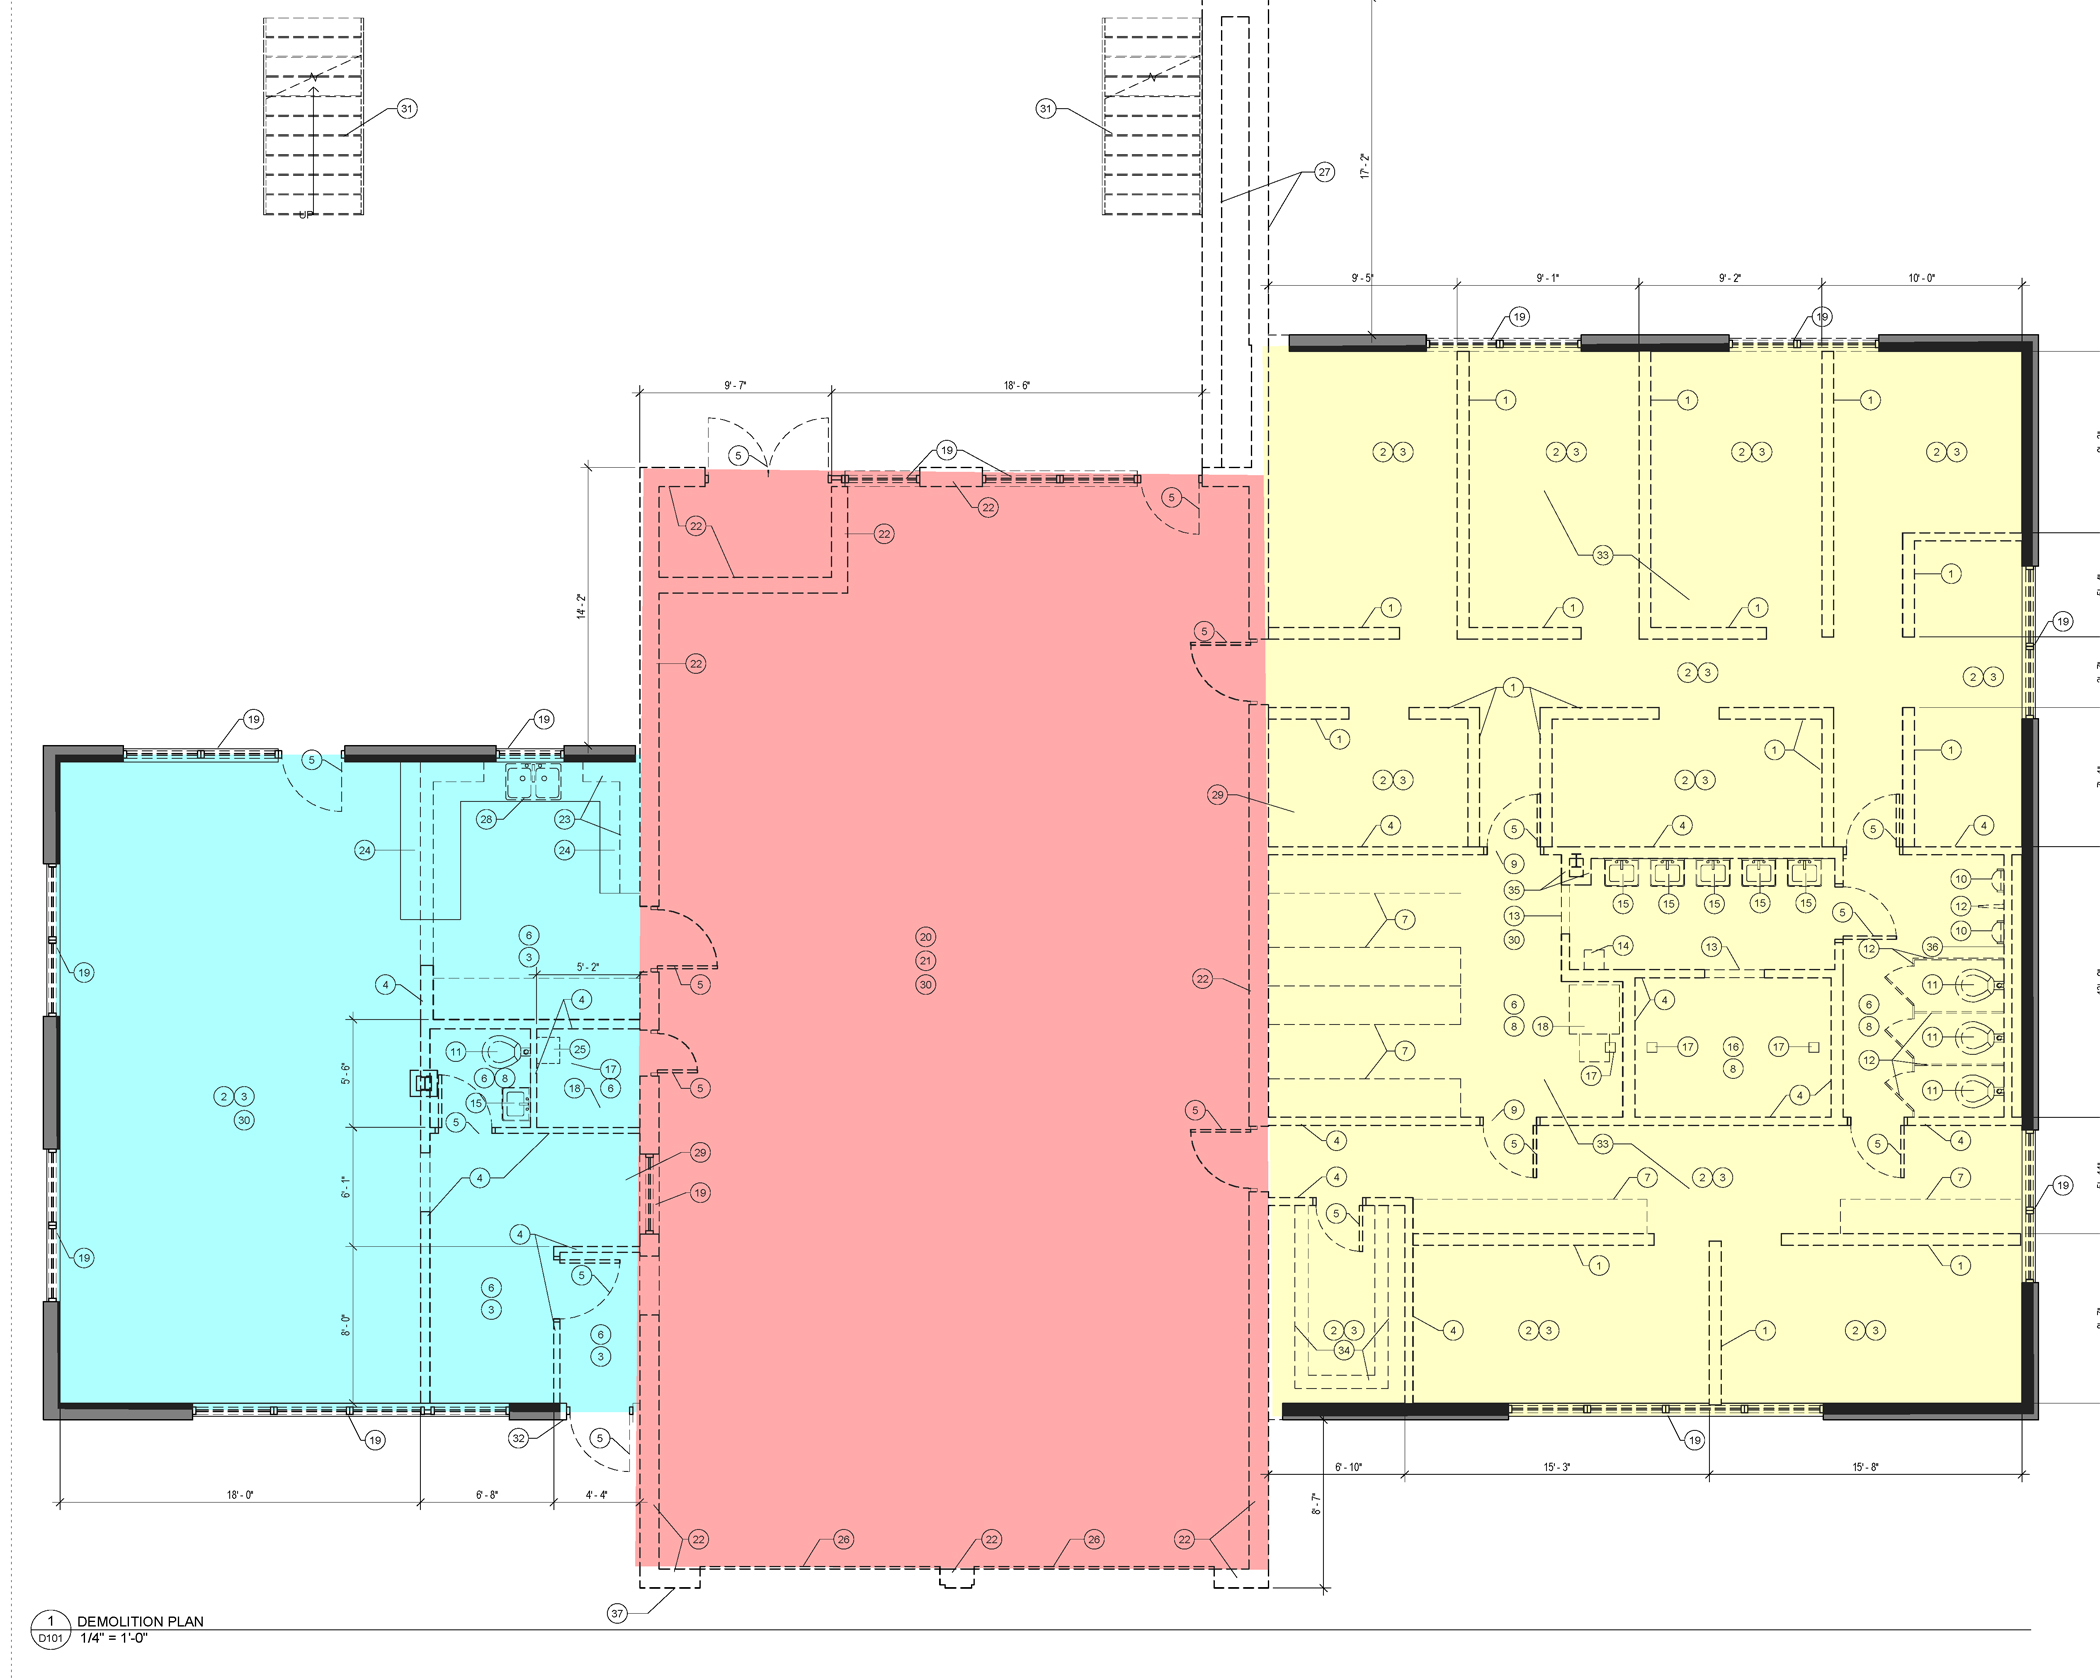 2018-10-12-sta11-renovation-floor-plan-1